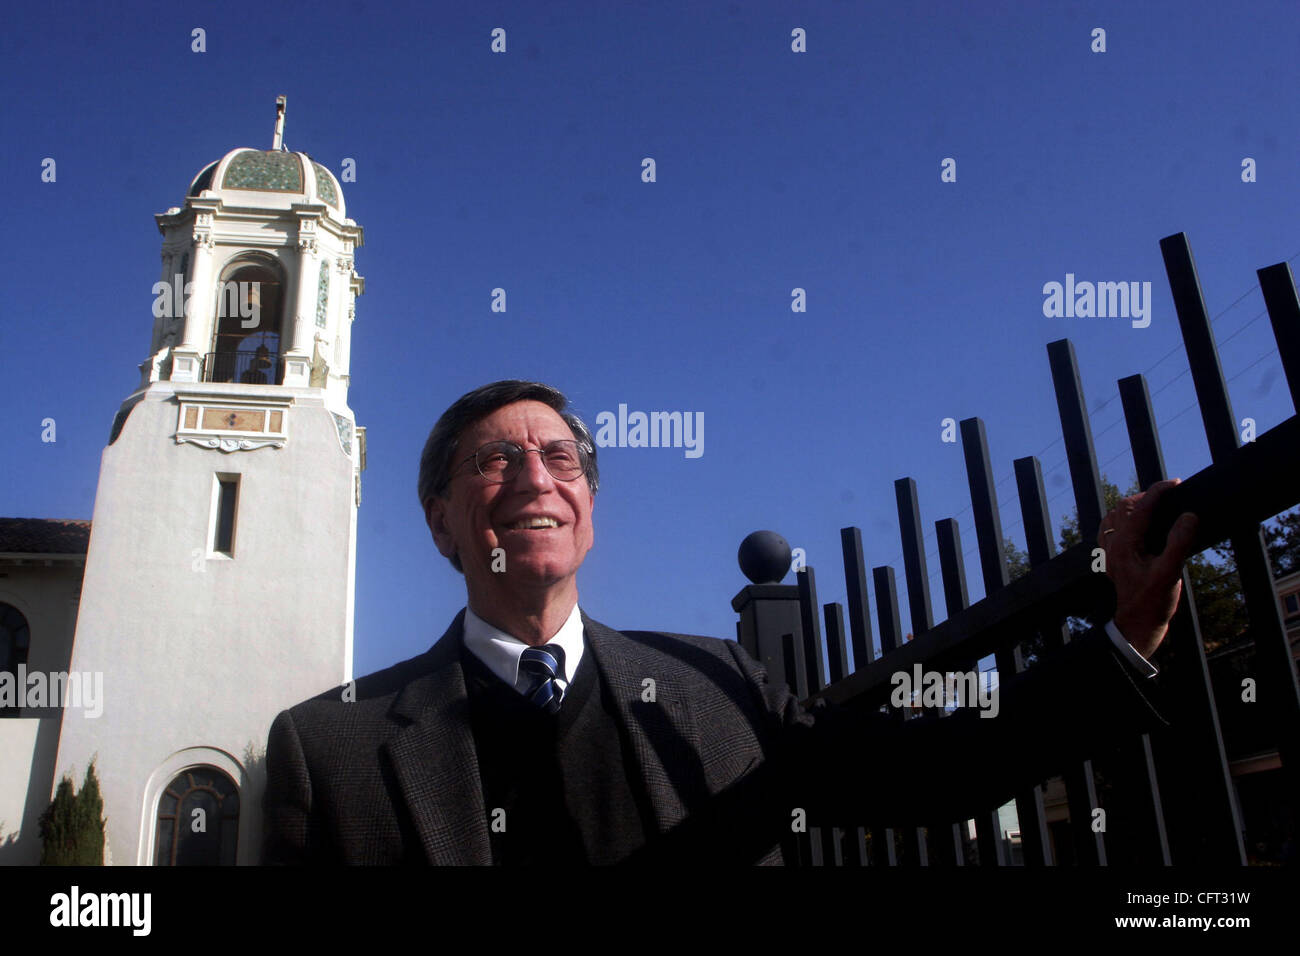 Retiring principal Anthony Aiello at St. Joseph's High School in Alameda, Calif. on Wednesday, December 6, 2006. - Stock Image